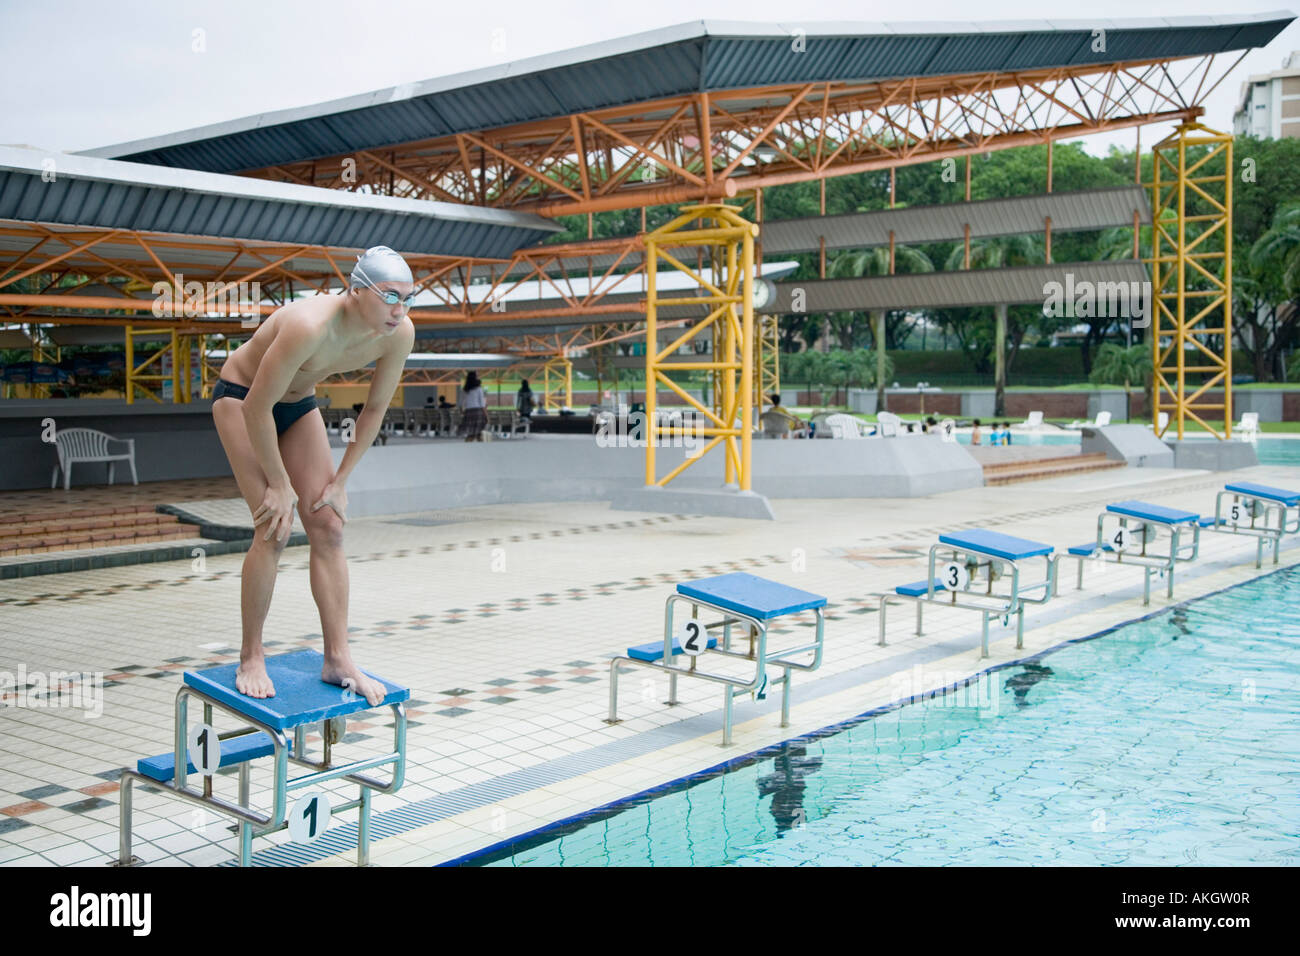 Young man standing on a starting block - Stock Image